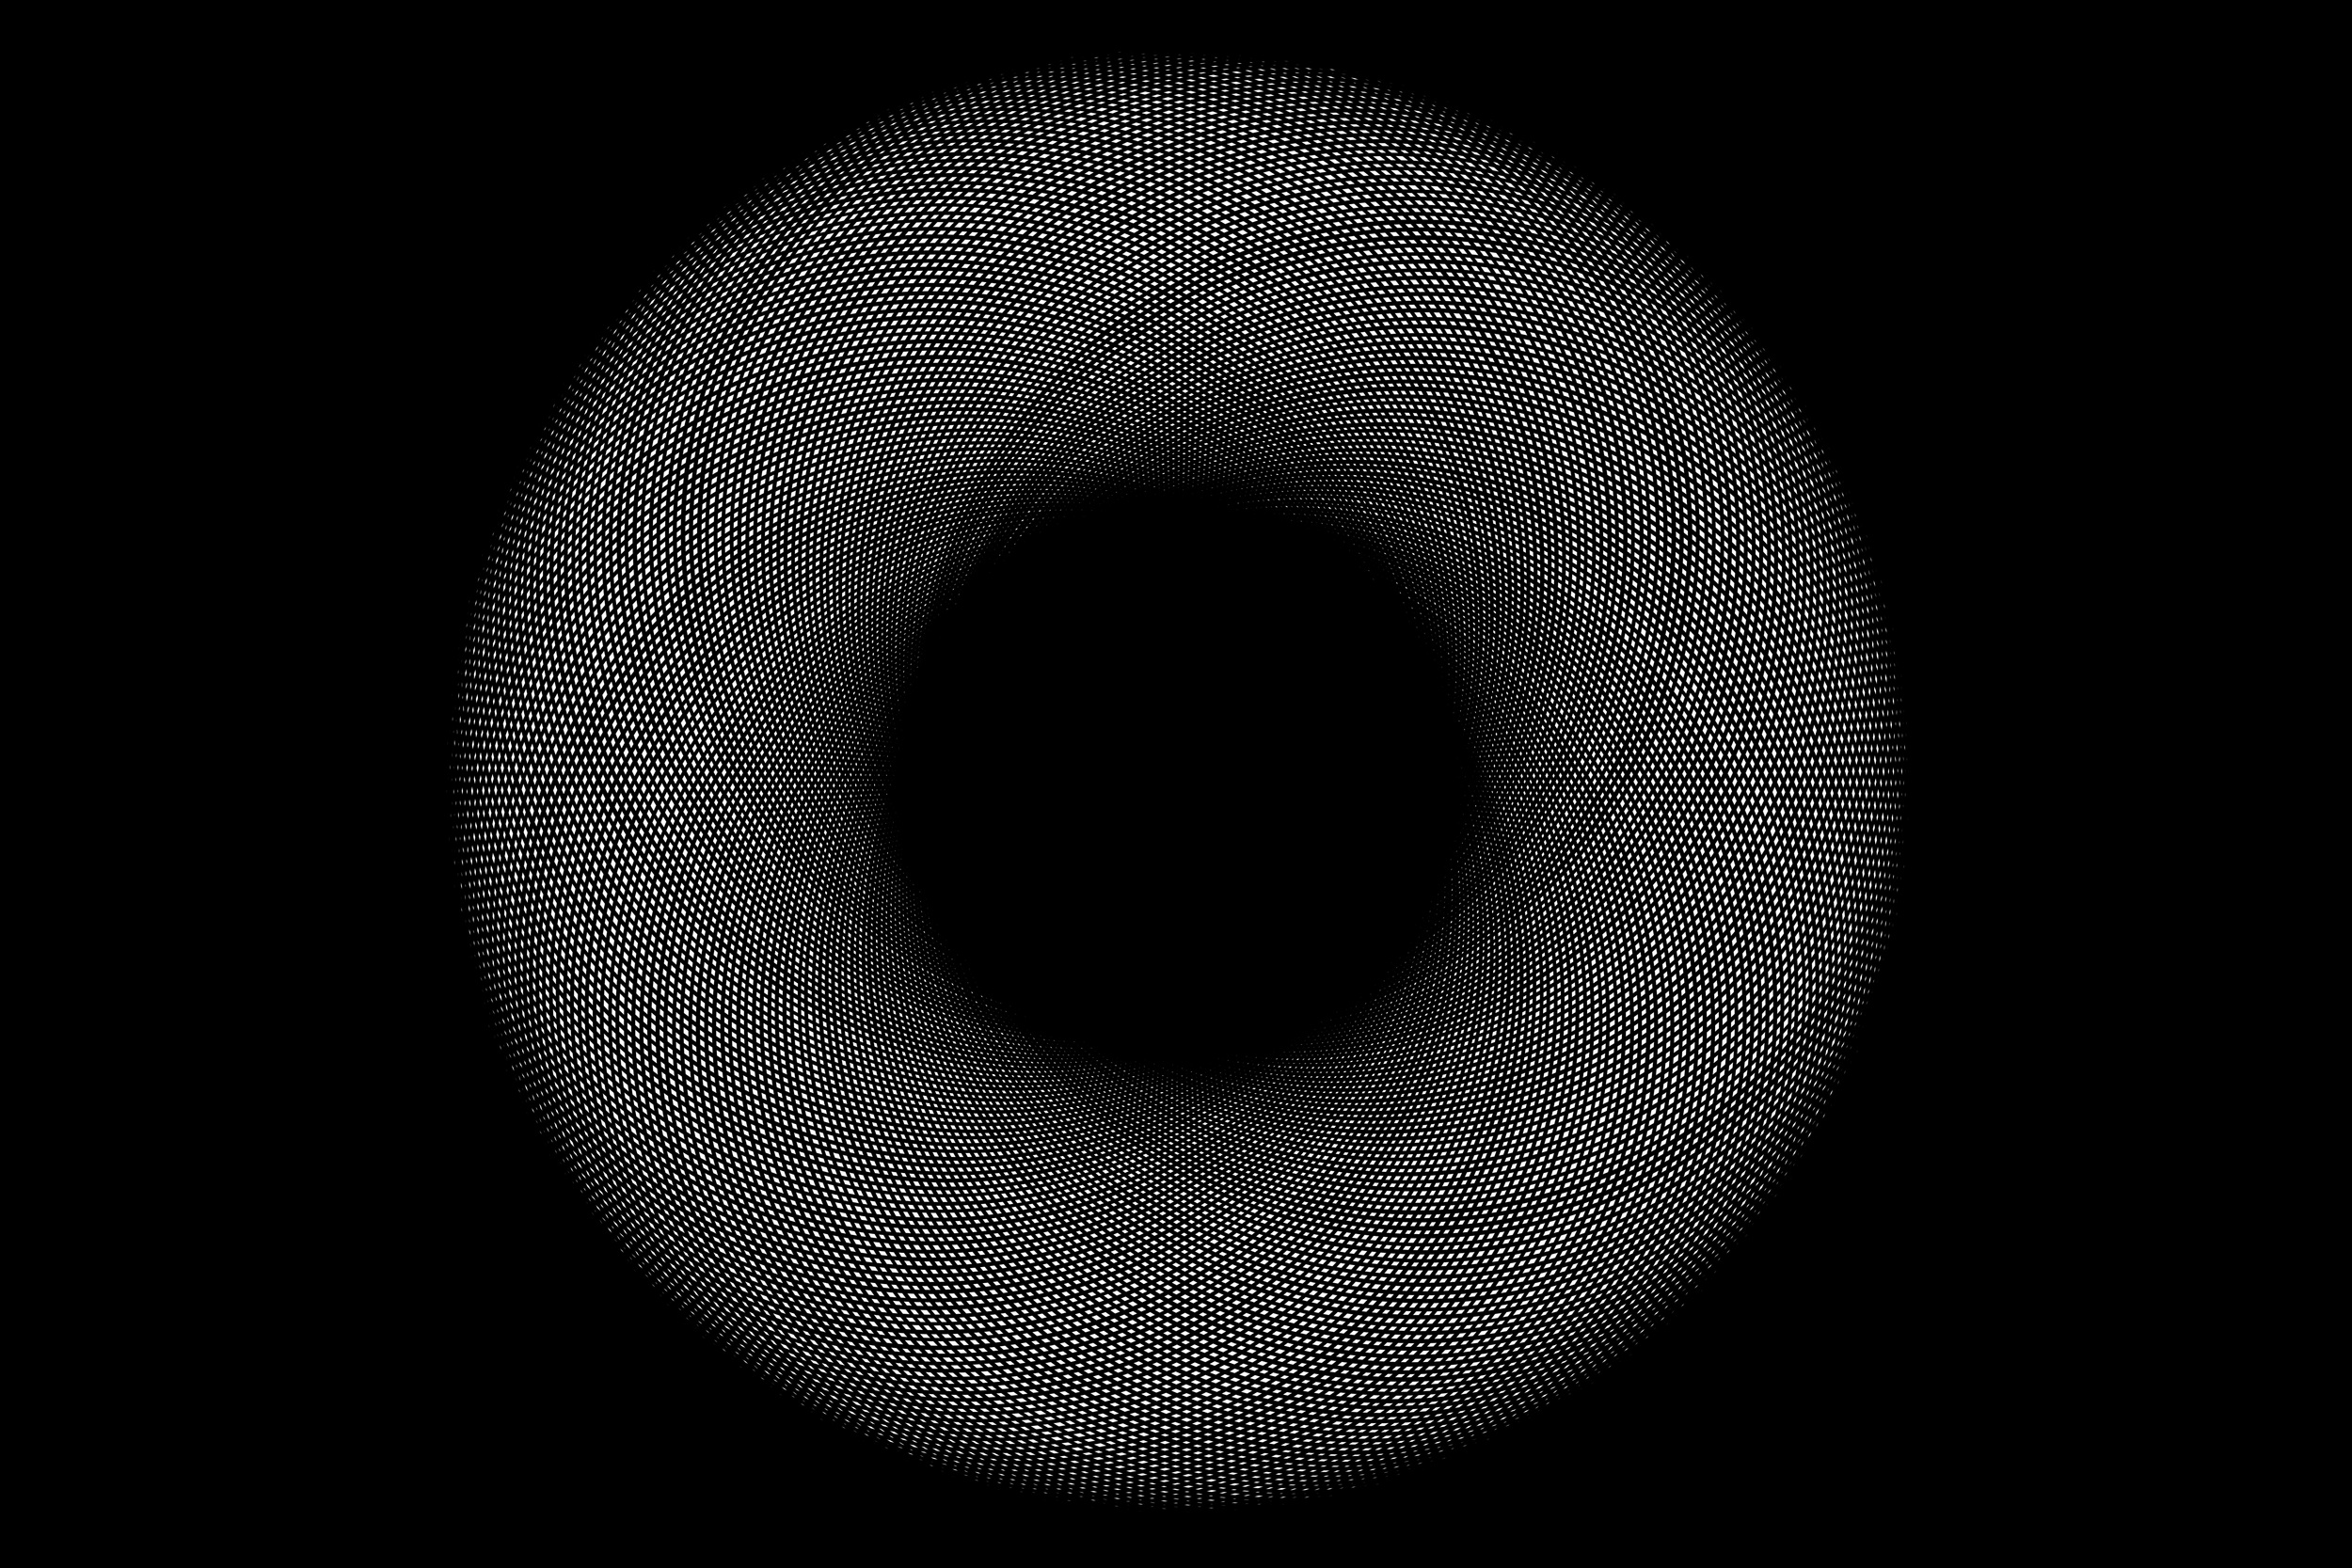 Dark Field  Manual repetition of circles in Adobe Photoshop CC. (2013)